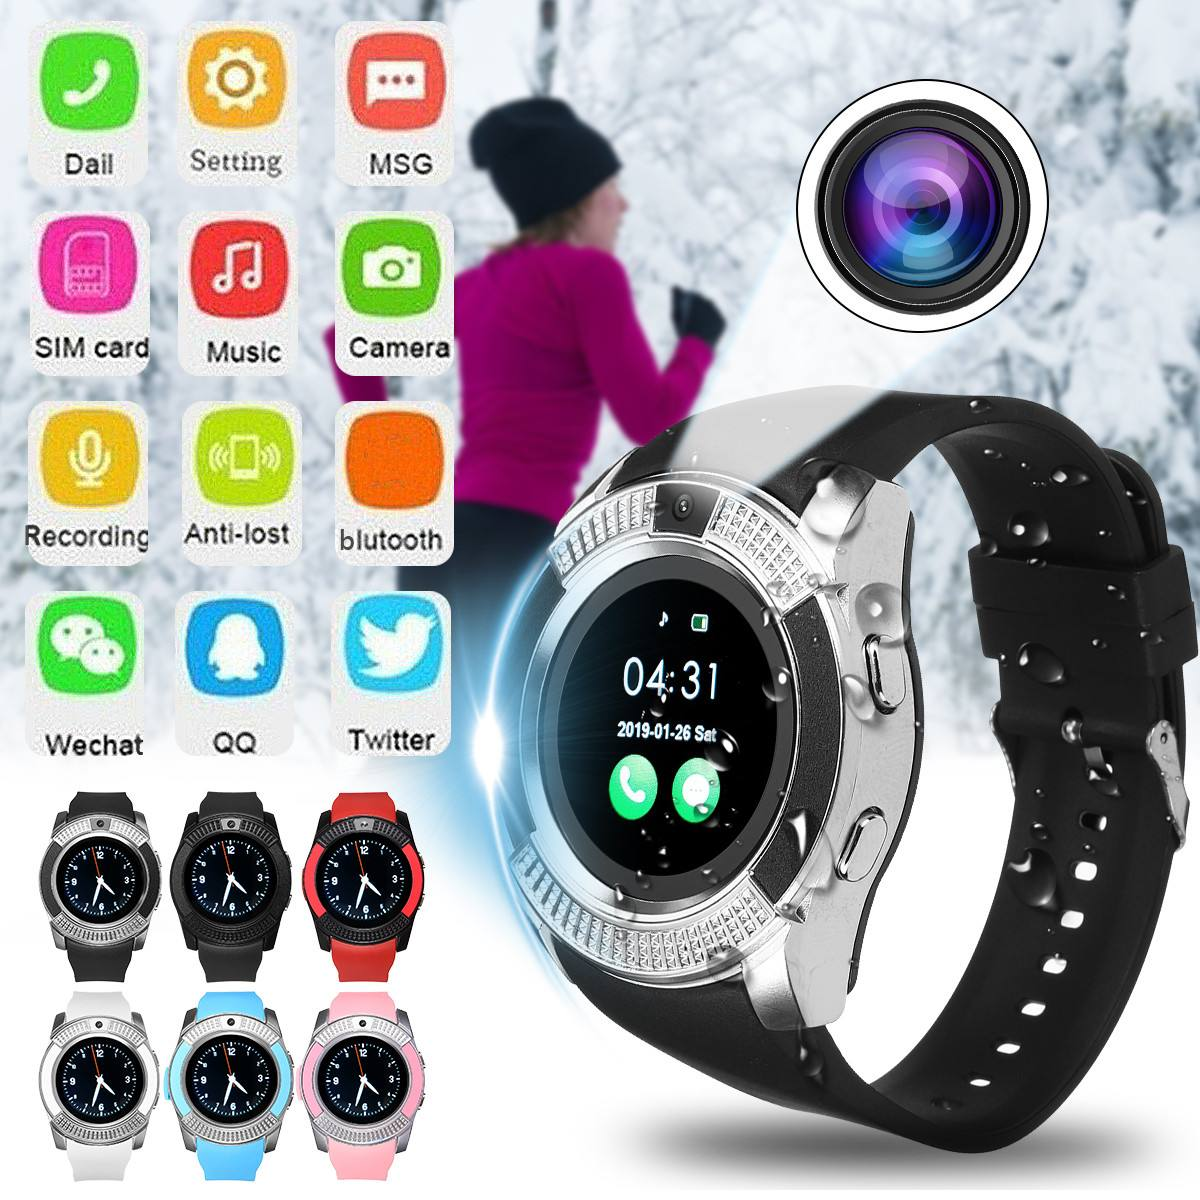 Round Touch Screen Smart Watch With HD Camera GPS Pedometer bluetooth SIM Card Function Silicone Band Standalone Sport Watch image